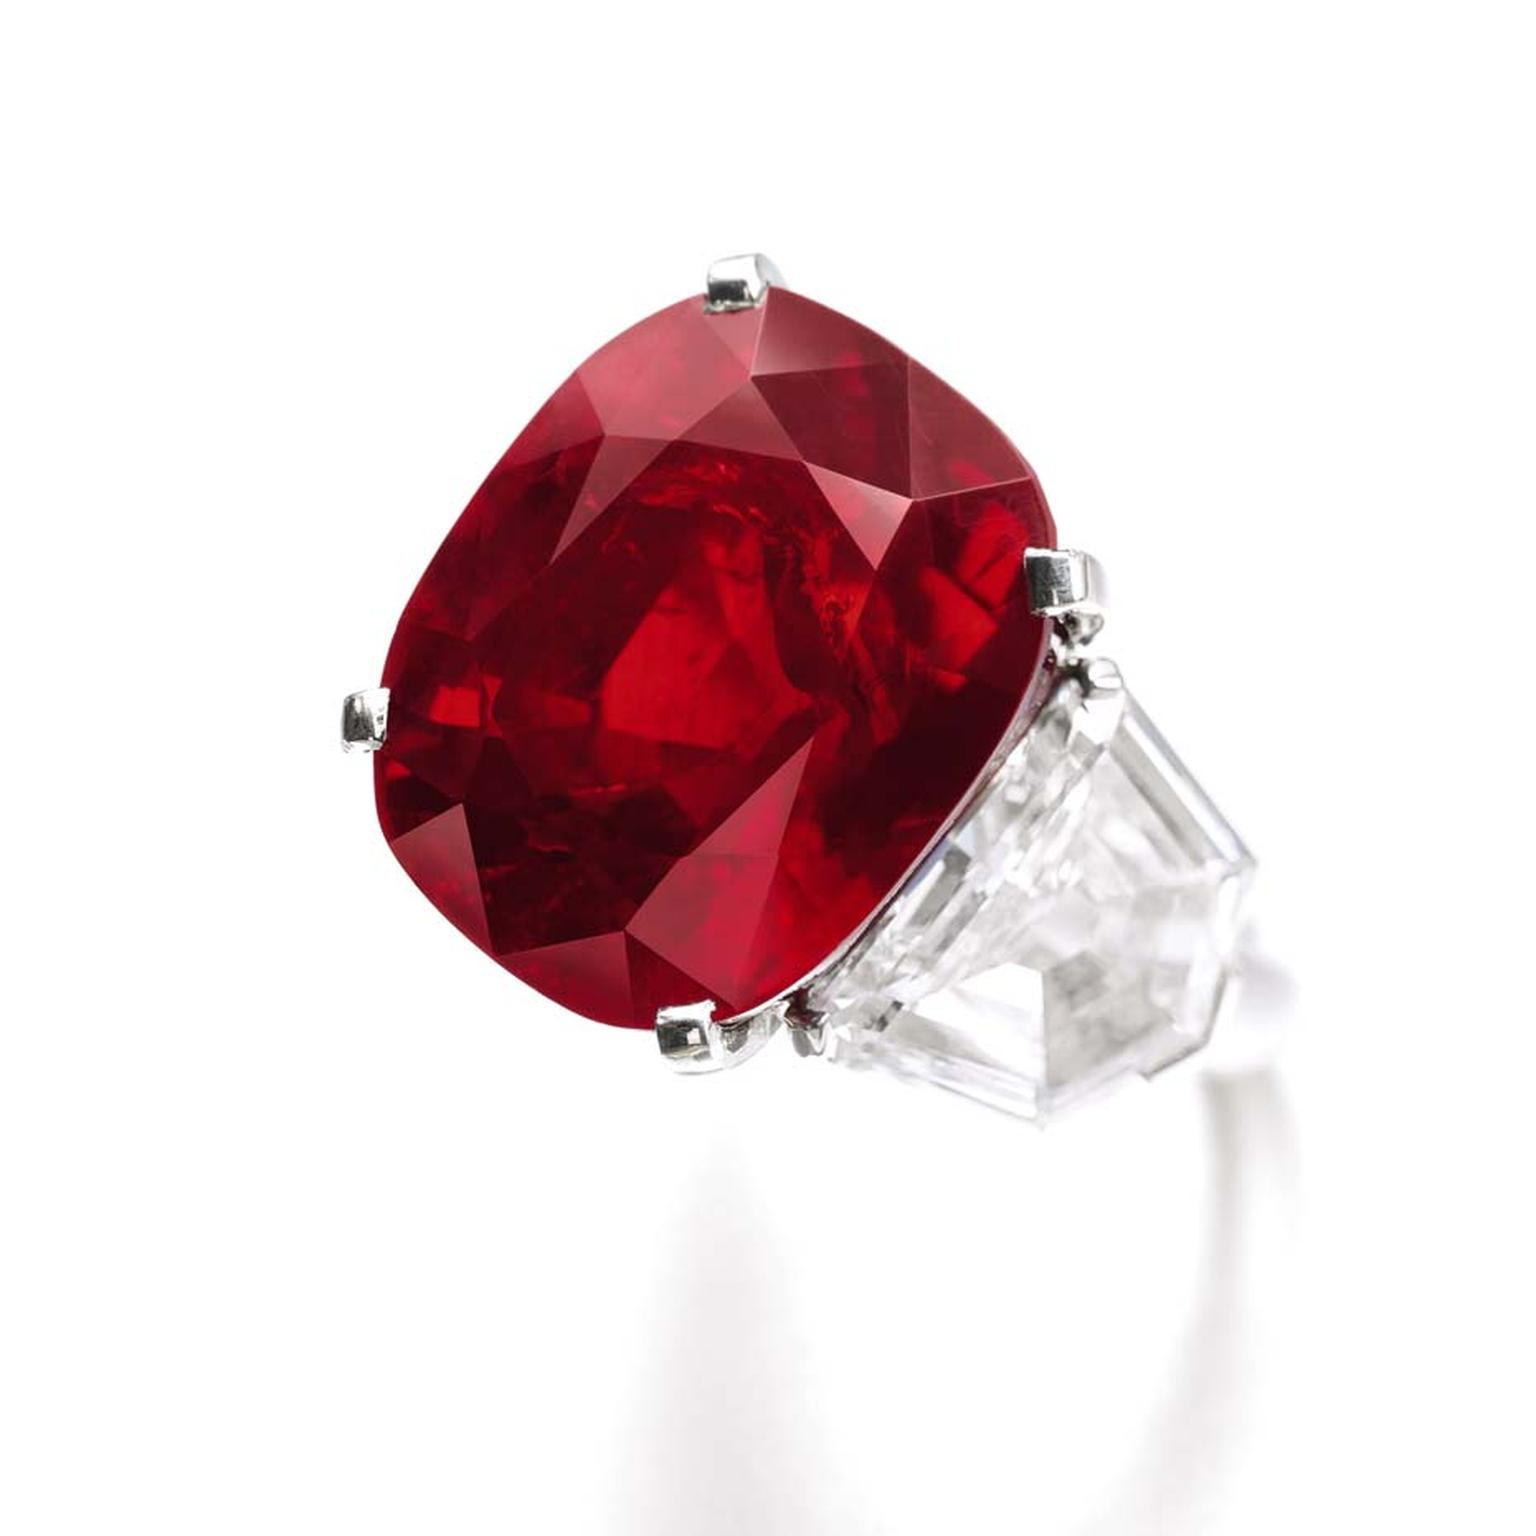 This week's Sotheby's jewellery auction in Geneva set a new world record for any coloured gemstone when the exceptional Sunrise Ruby sold for an astonishing $30.3 million. More than tripling the previous record, it is officially the most expensive ruby in